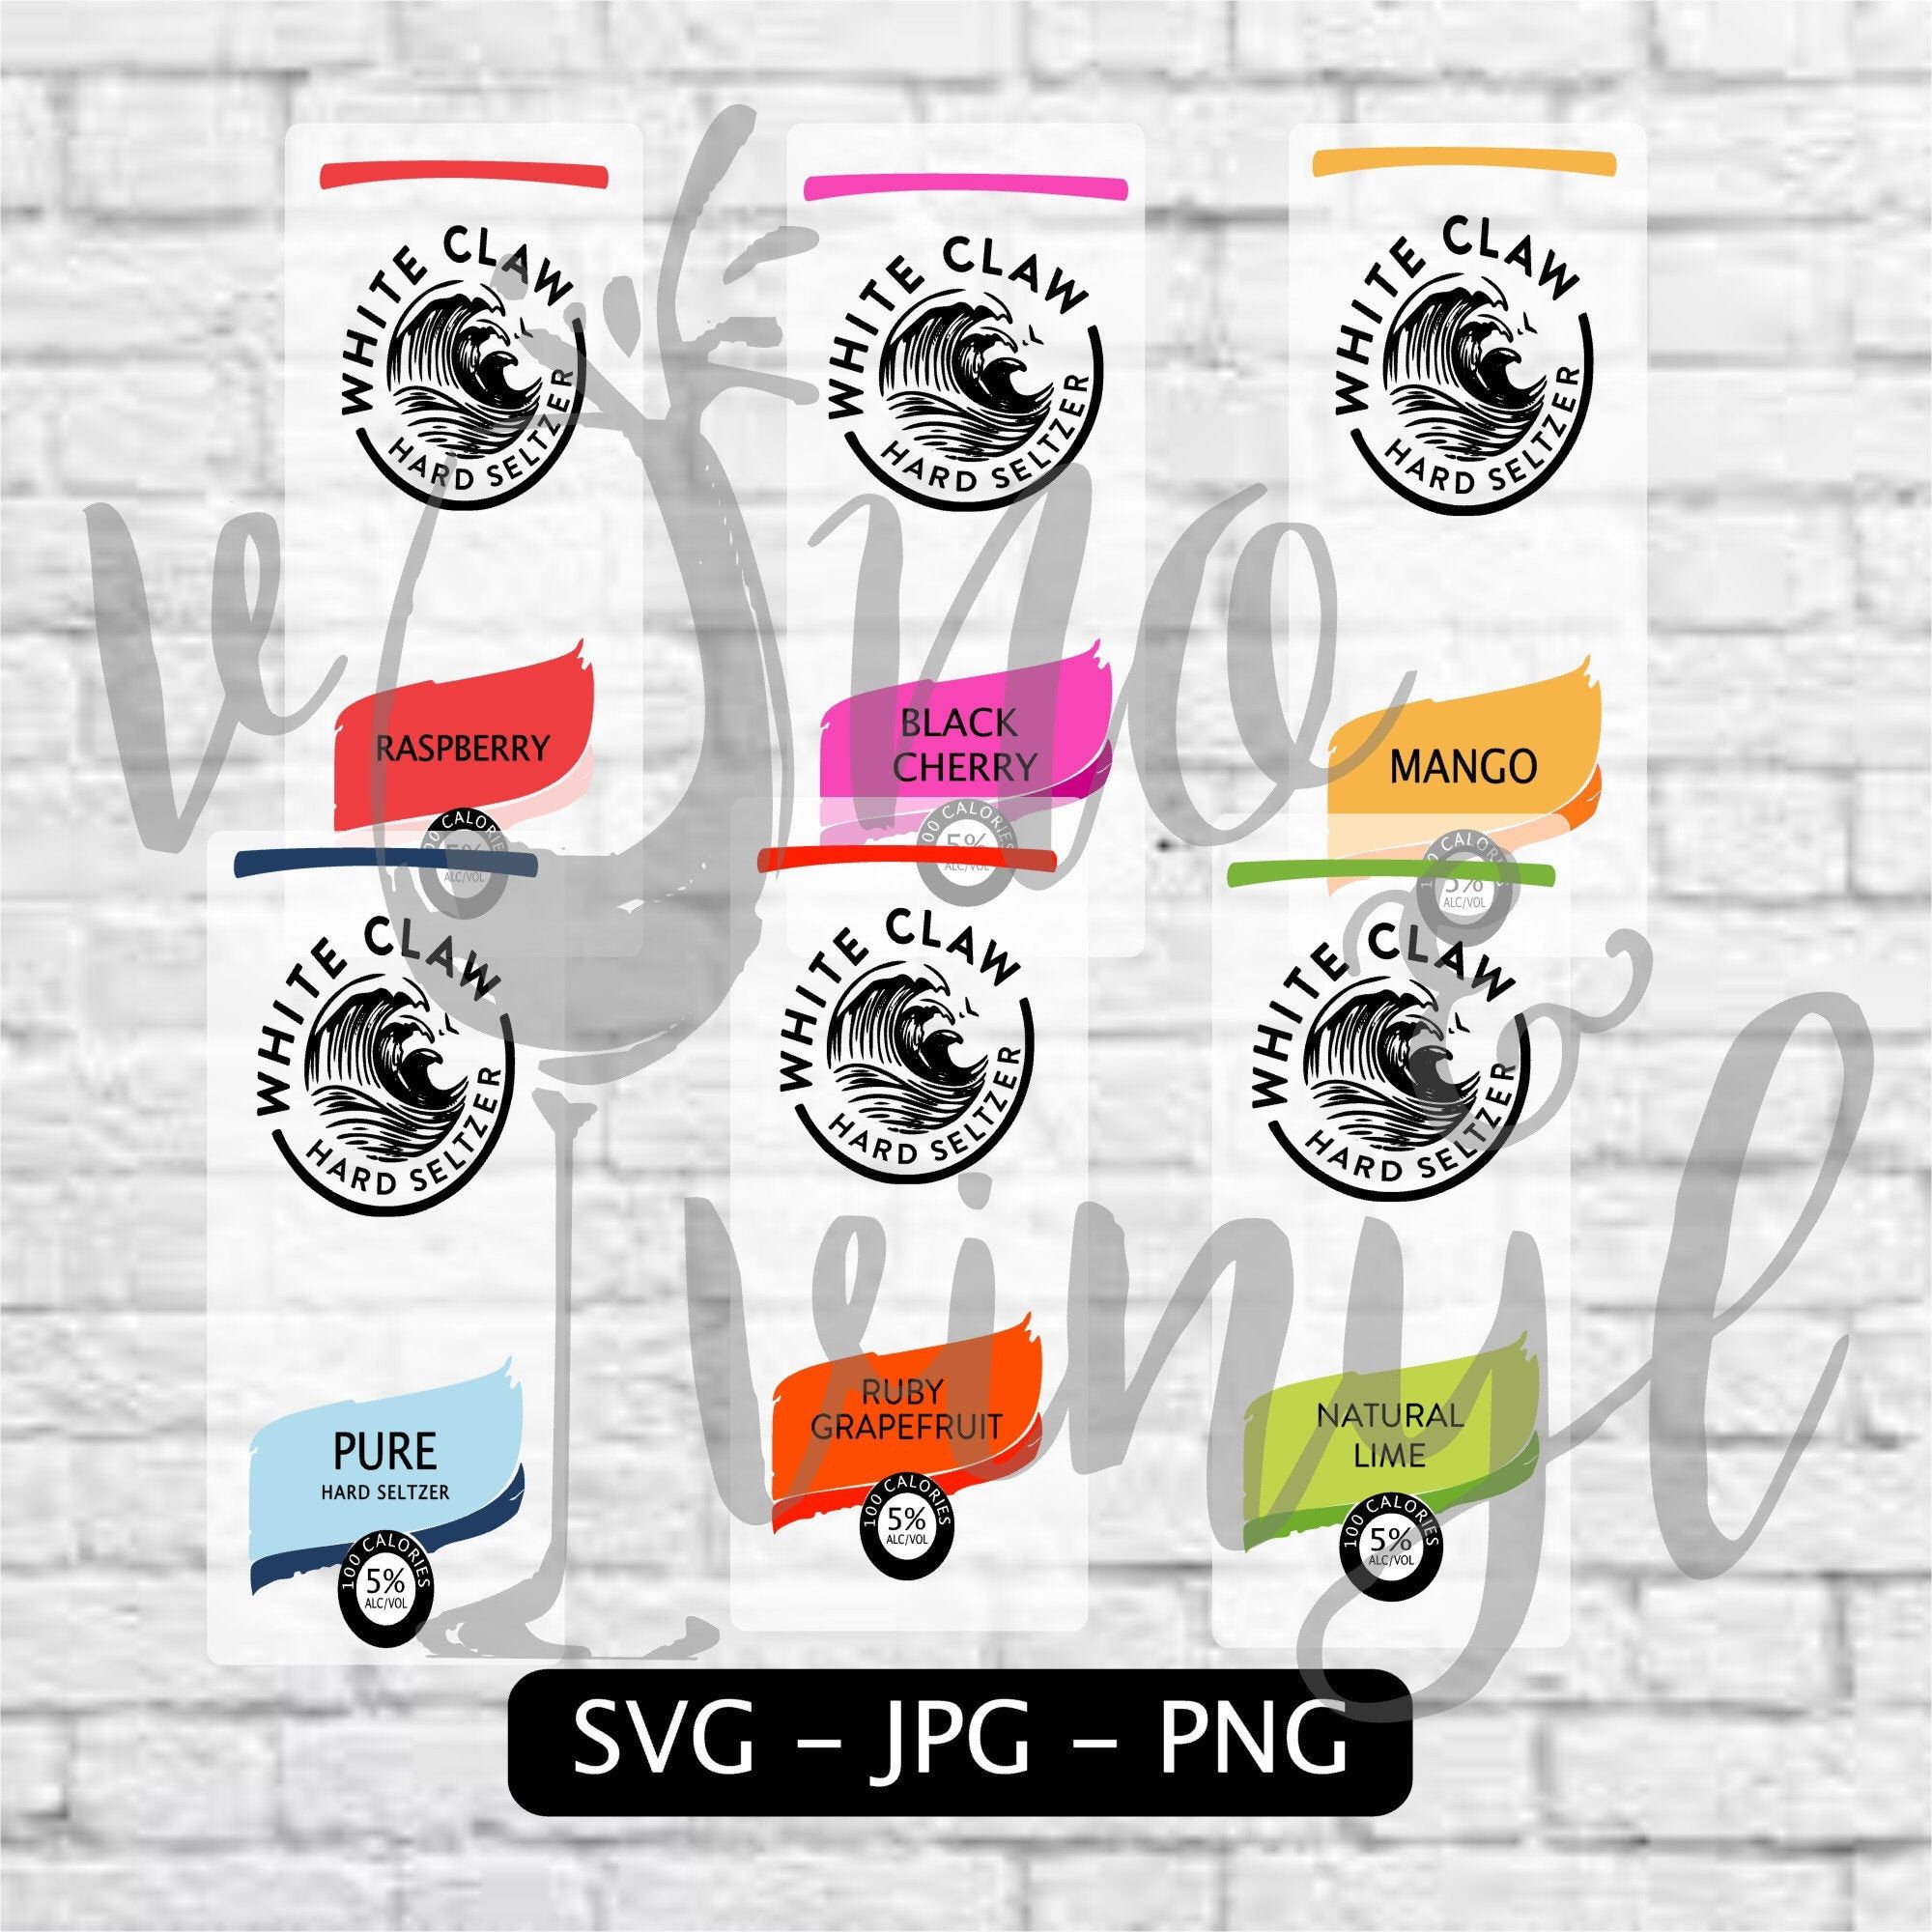 White Claw SVG/Image Combo Pack Pure, Mango, Black Cherry